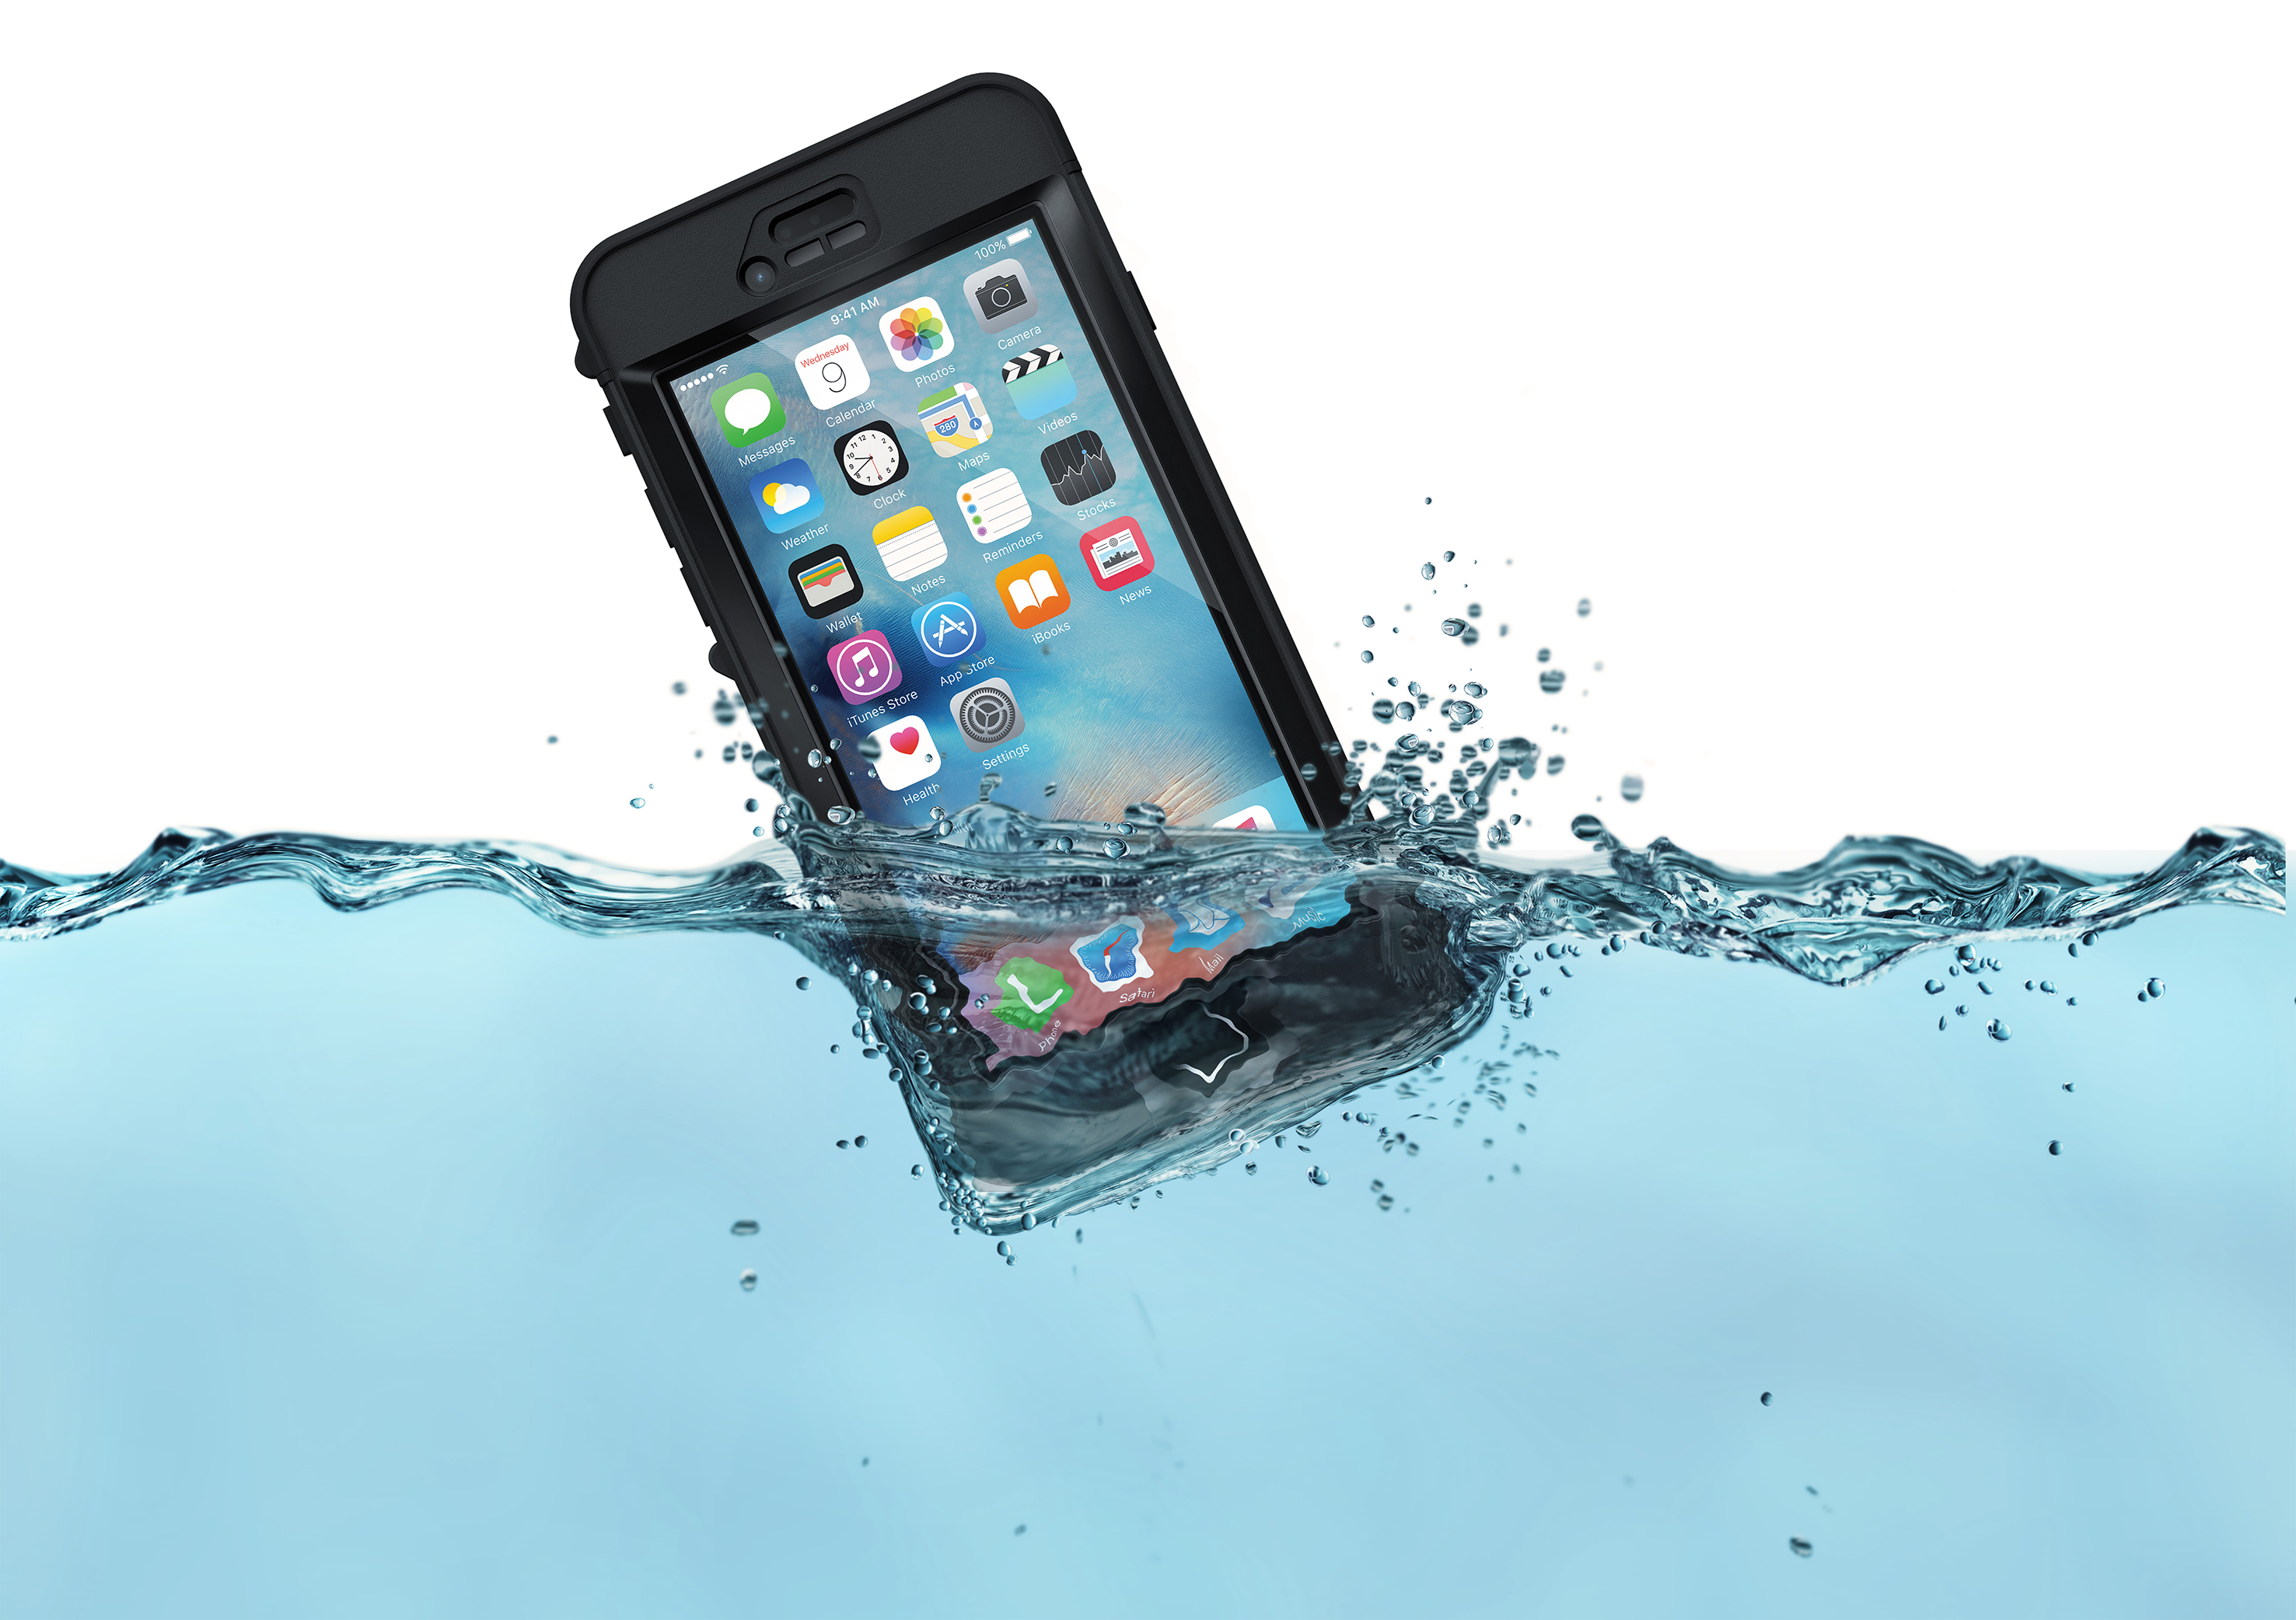 Läs mer om LifeProof Nüüd iPhone 6S Plus